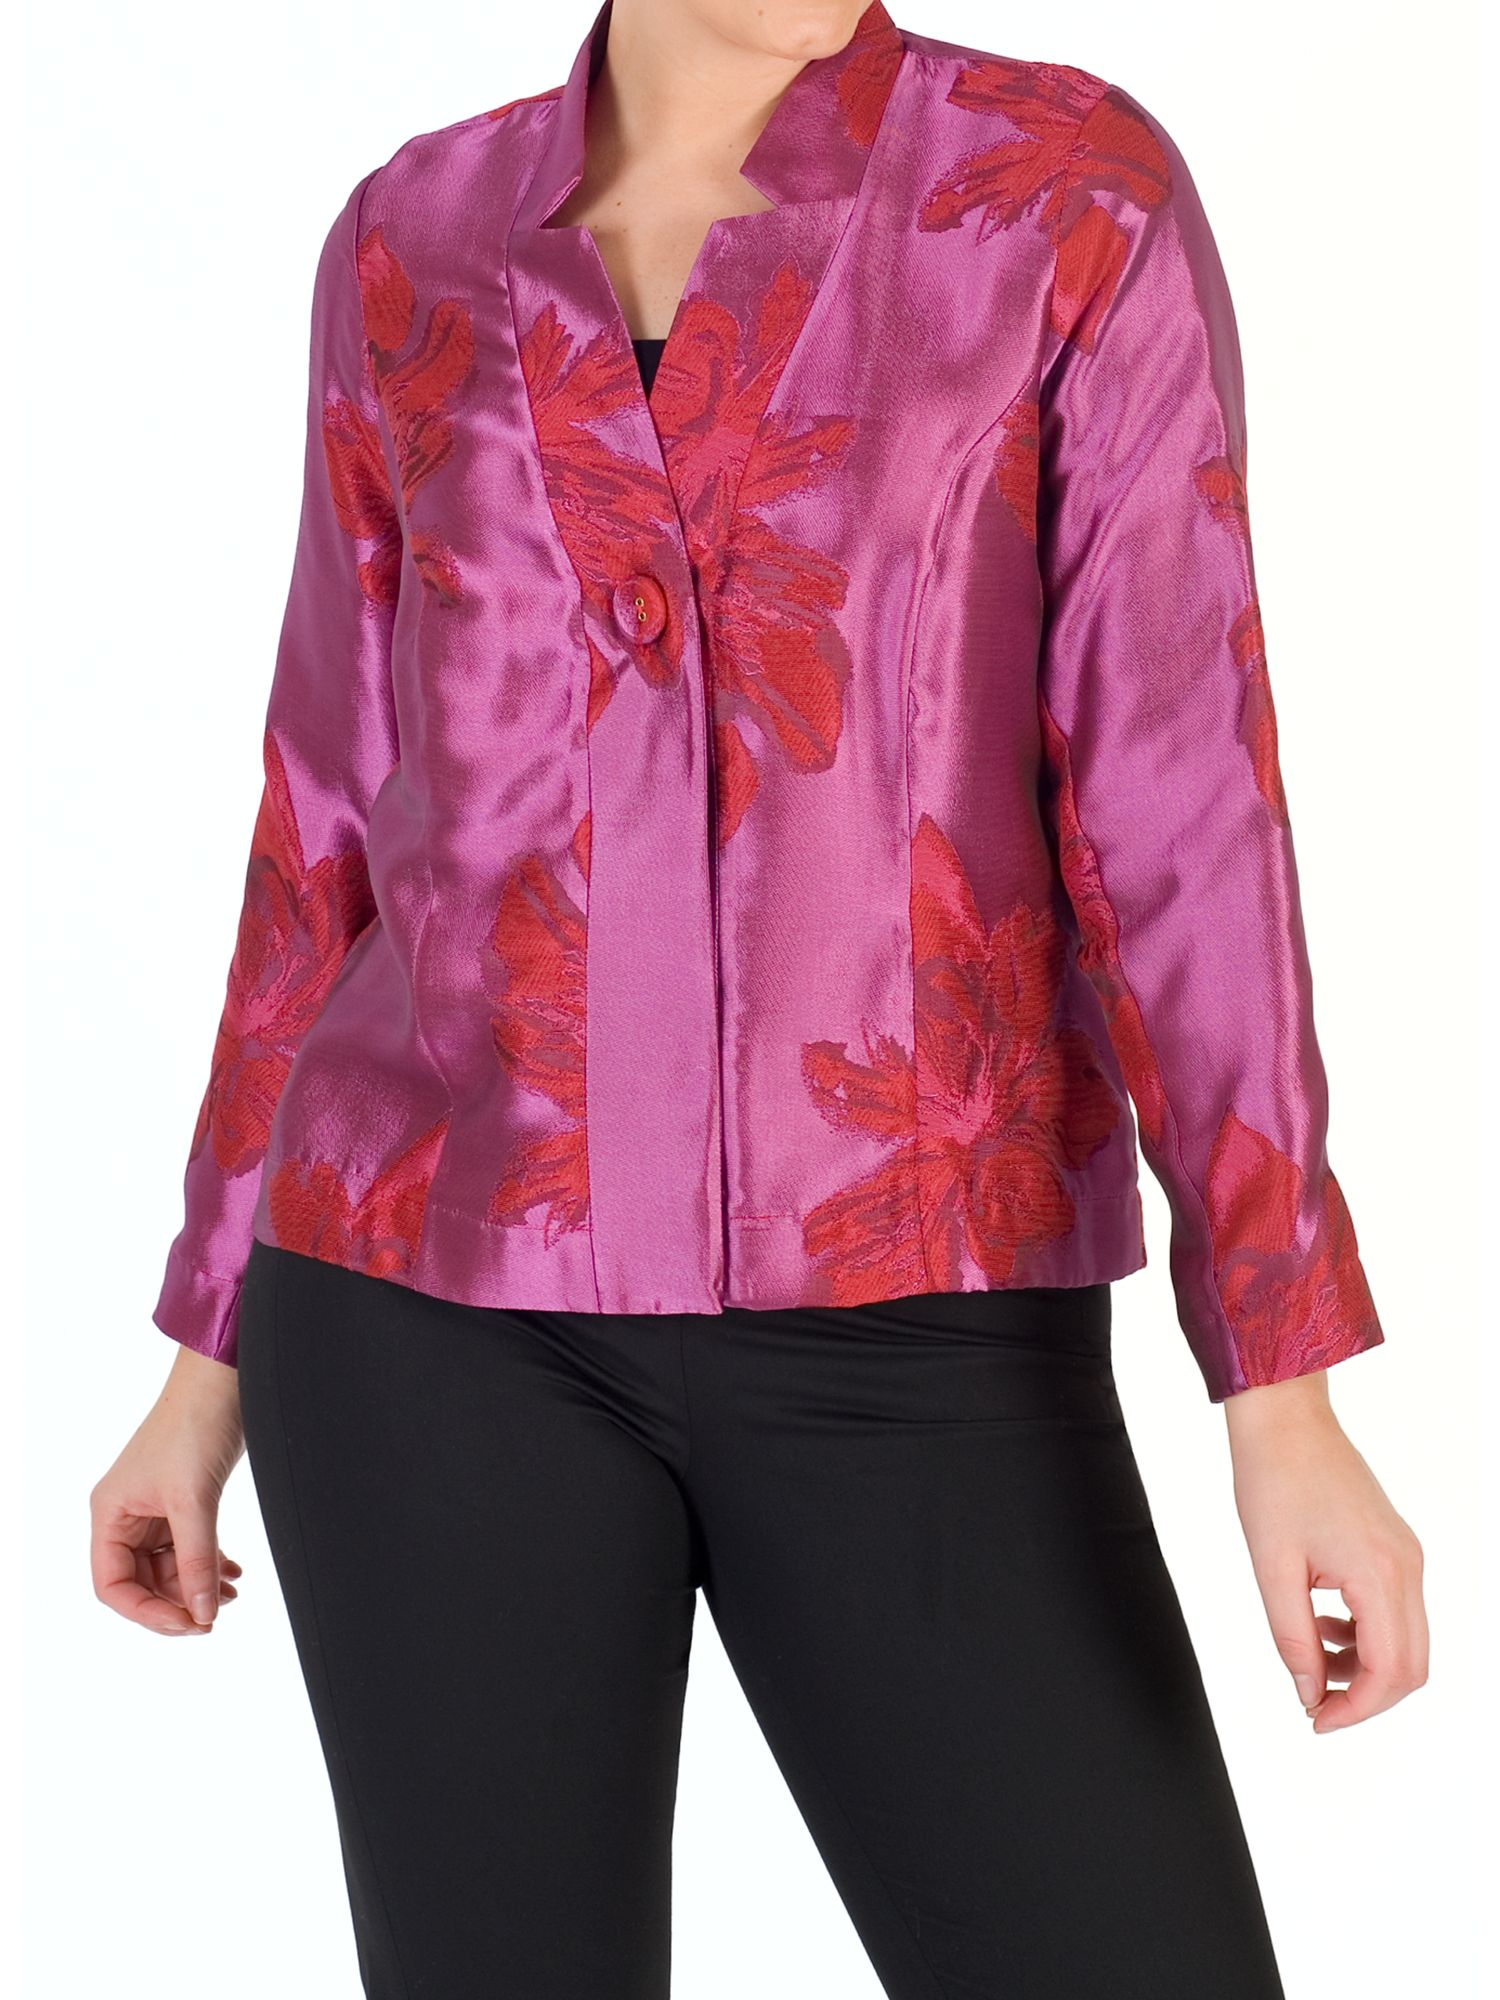 Chesca Chesca Floral Jacquard Jacket, Red/Hot Pink